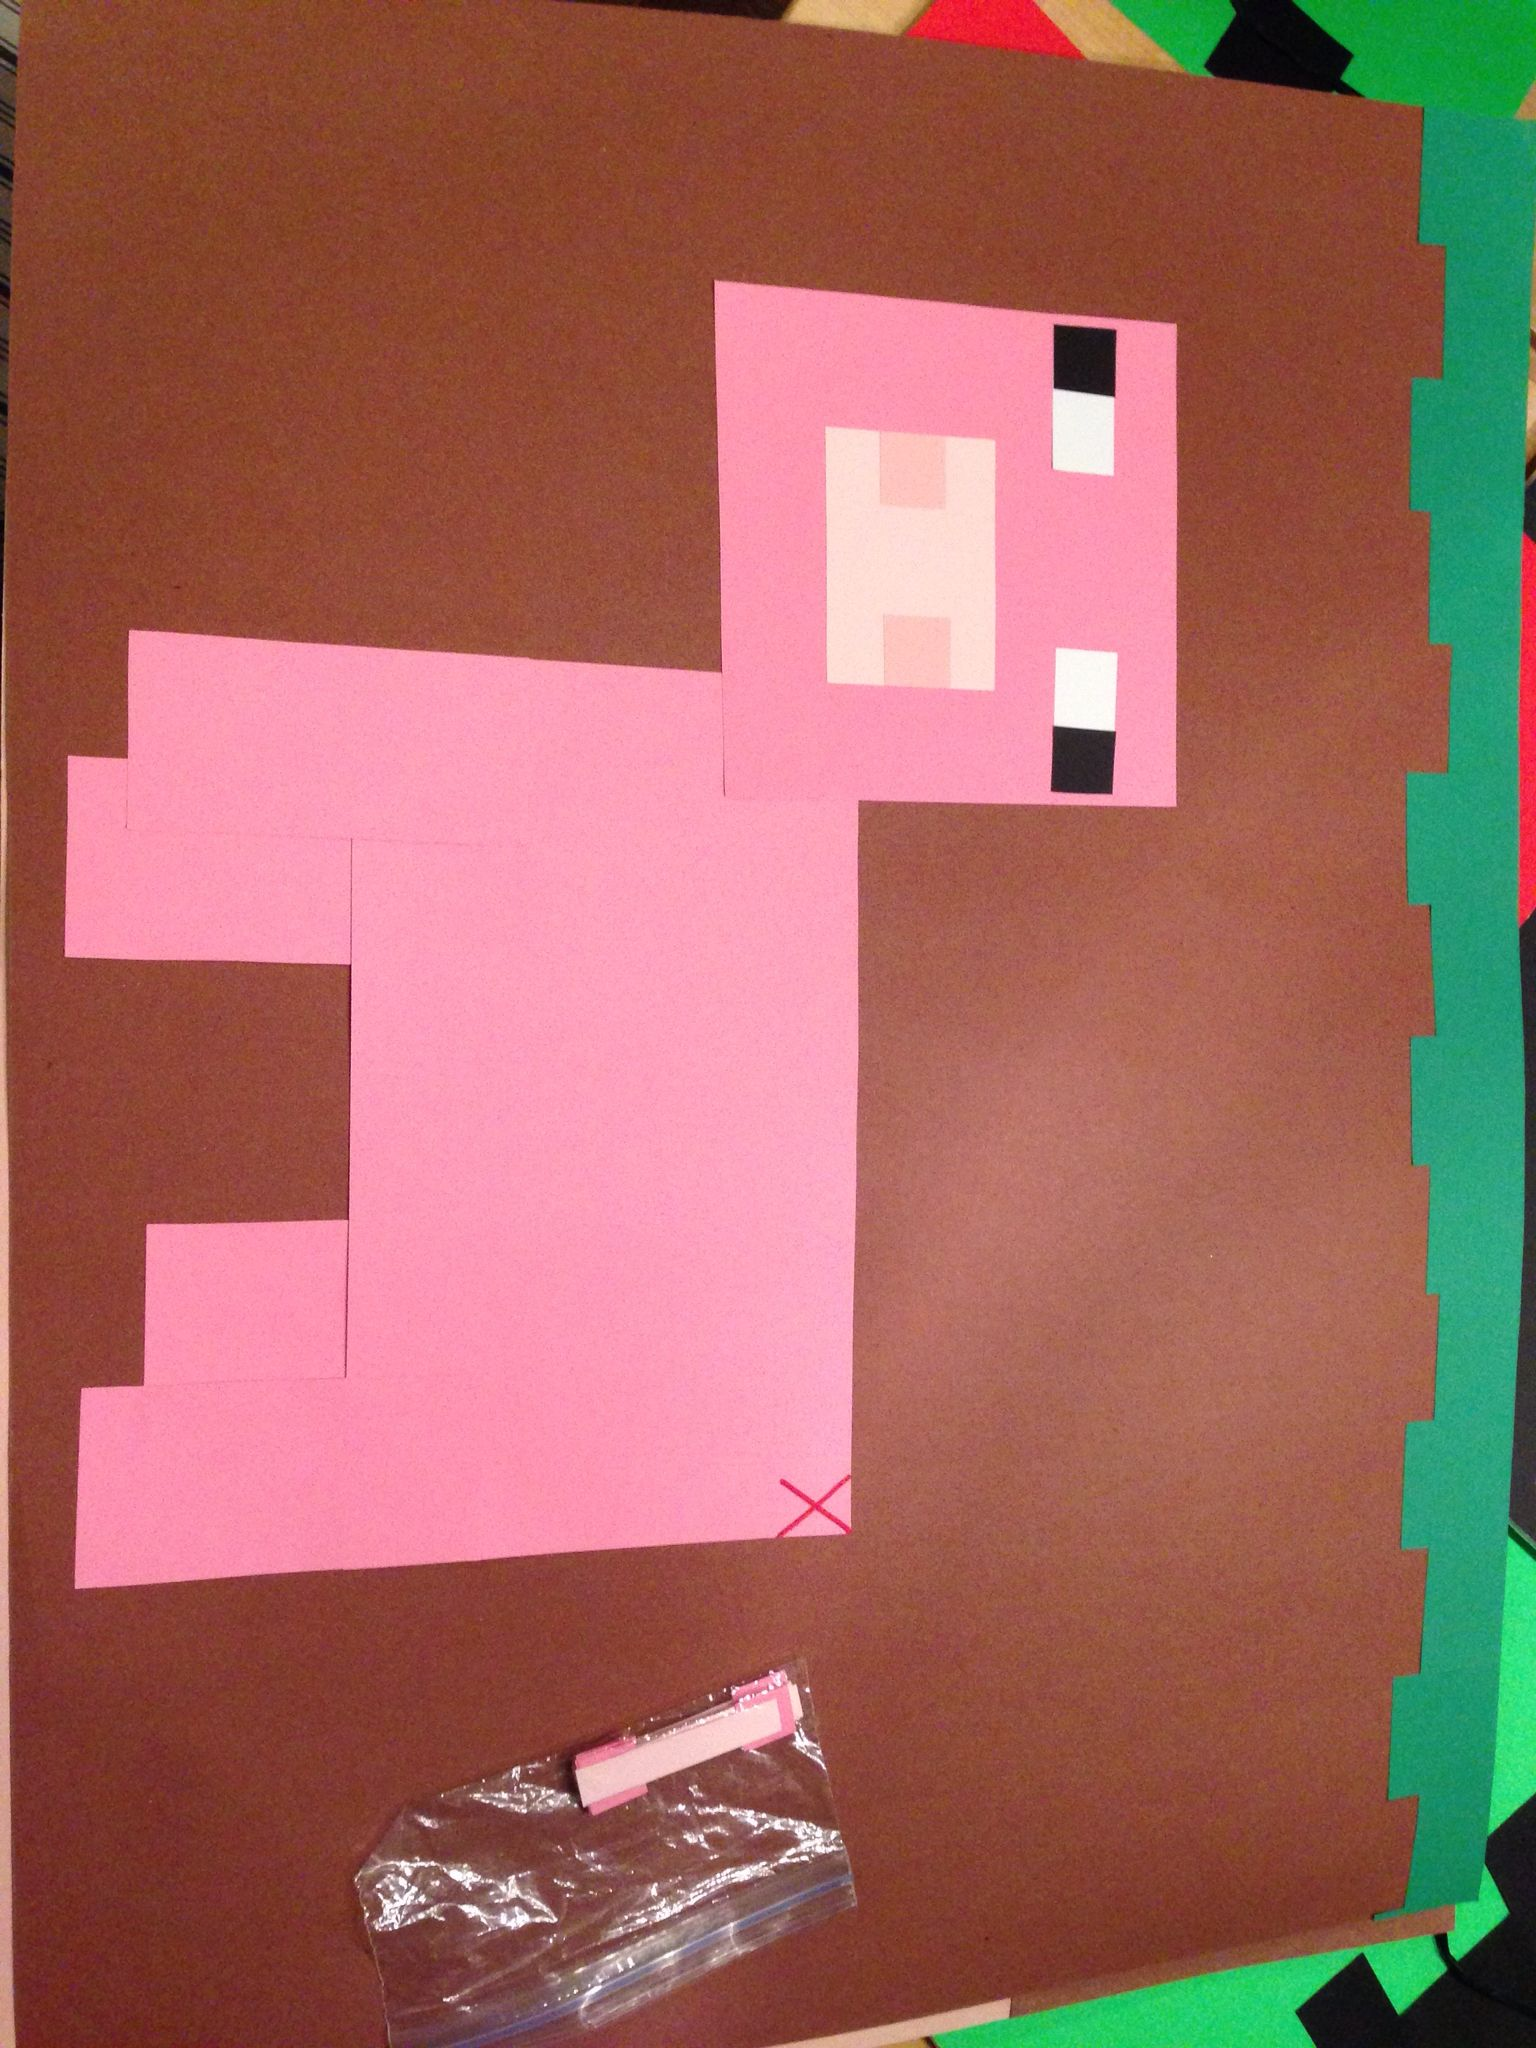 Minecraft pin the tail on the pig game   Minecraft party ...